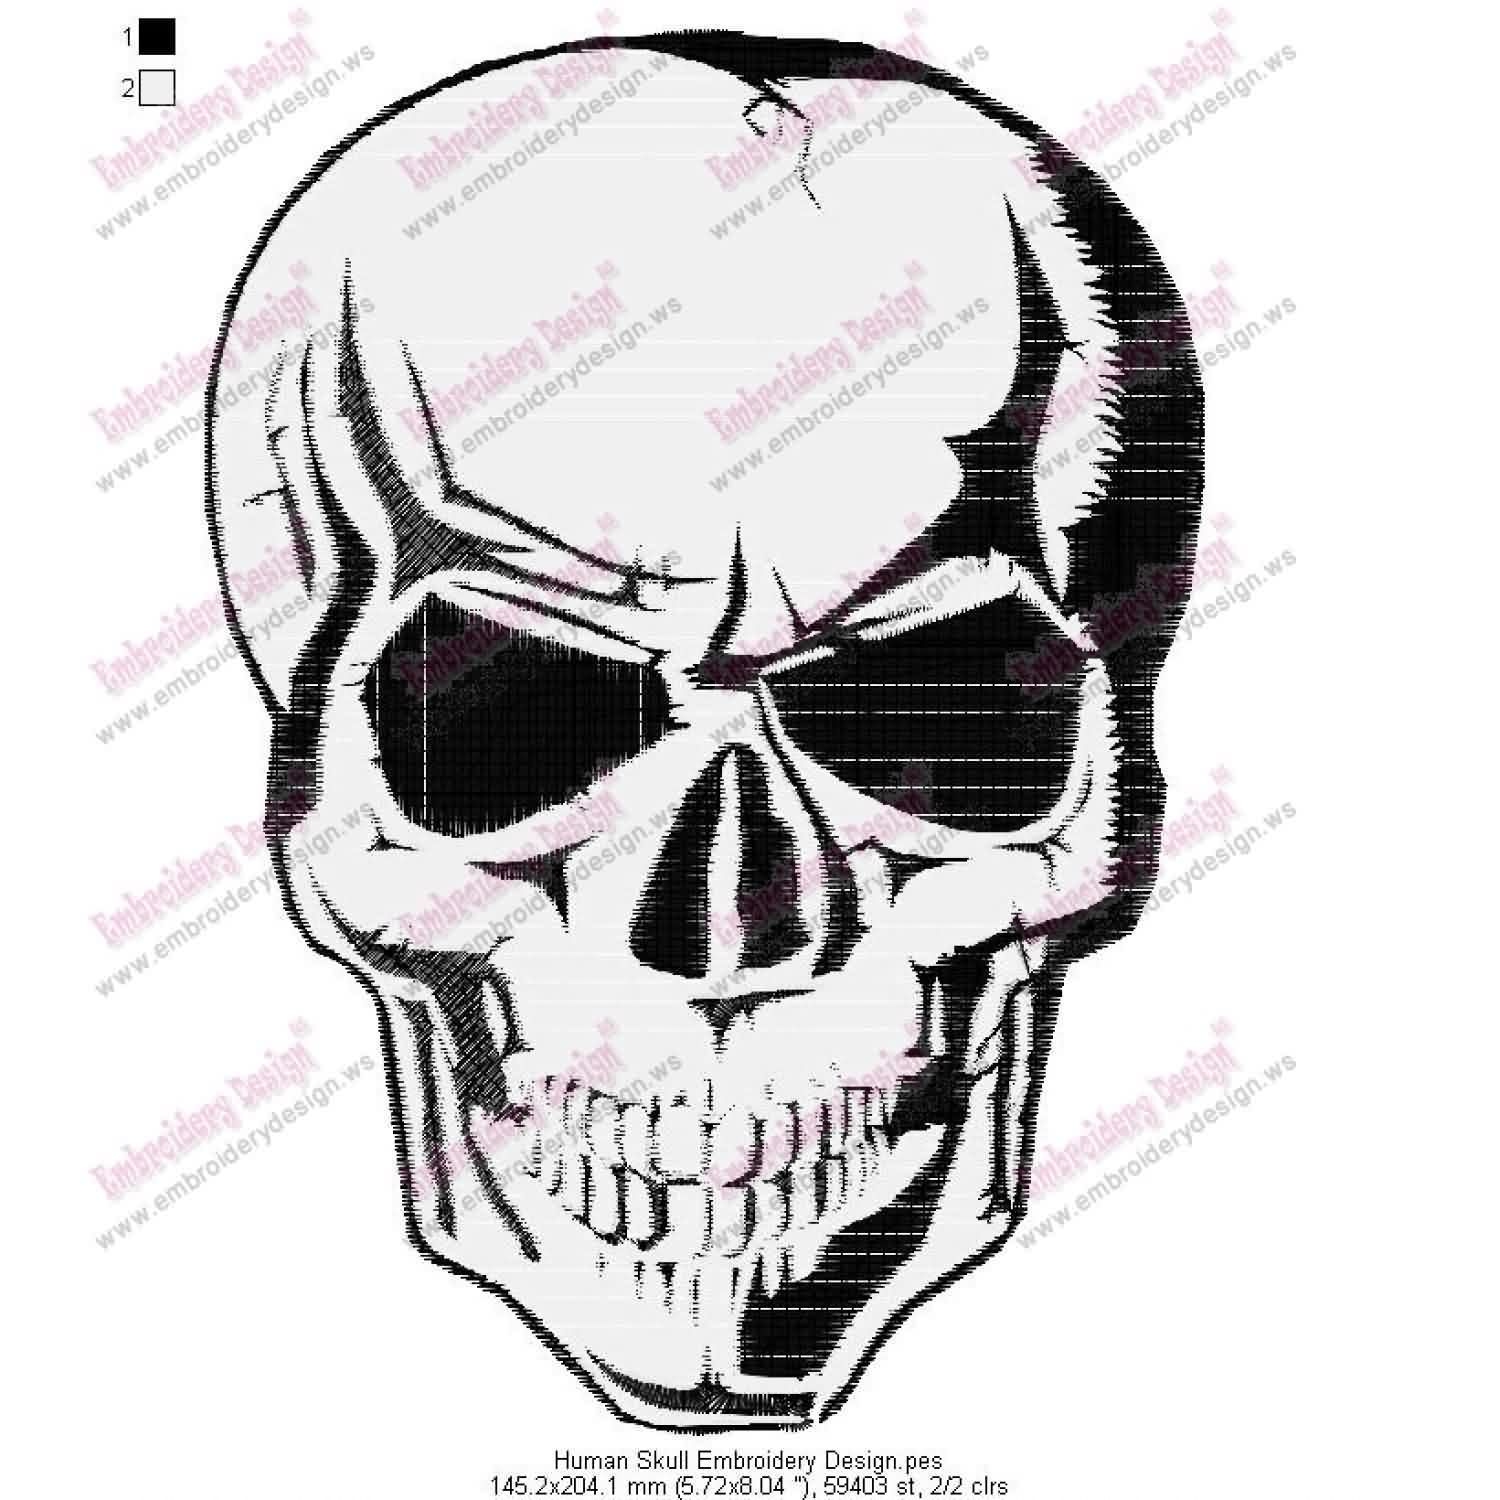 Human Skull Embroidery Design